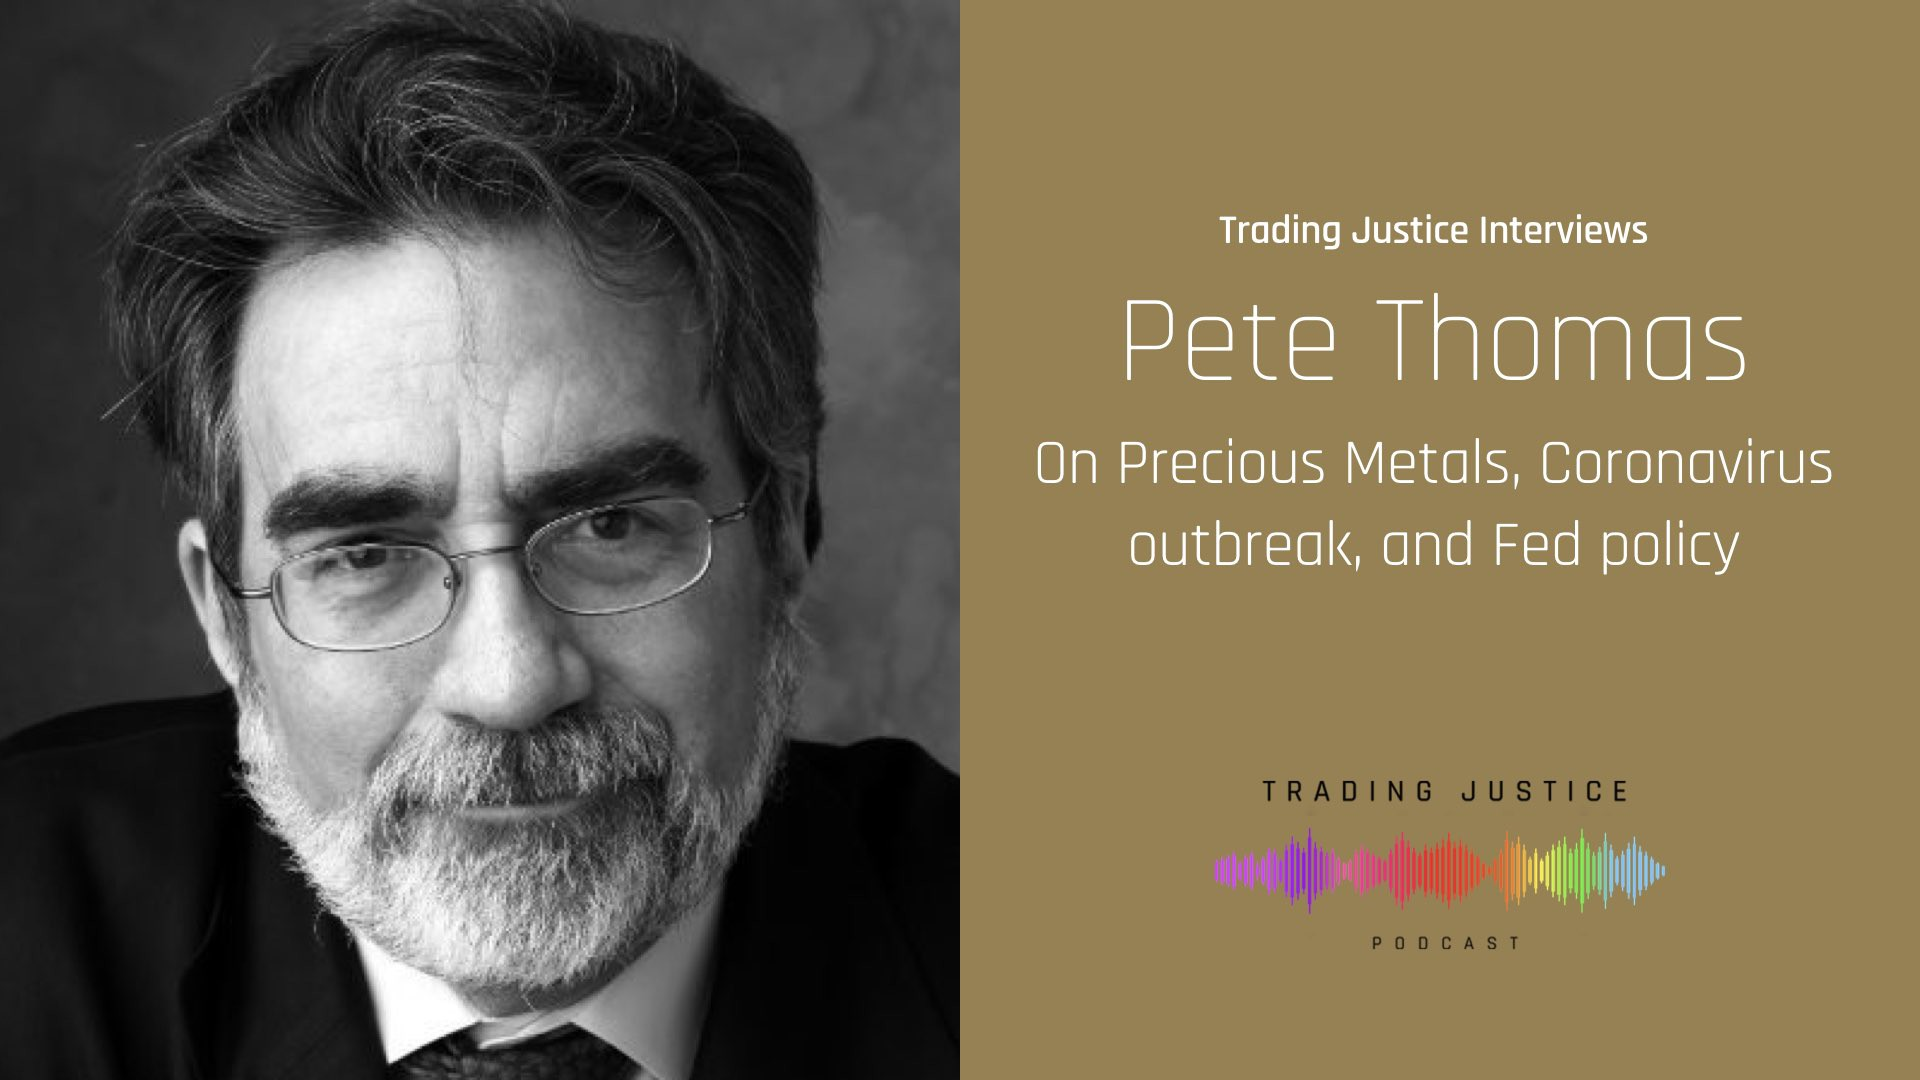 Trading Justice Interviews Pete Thomas on Precious Metals, Coronavirus outbreak, and Fed policy   Trading Justice Podcast